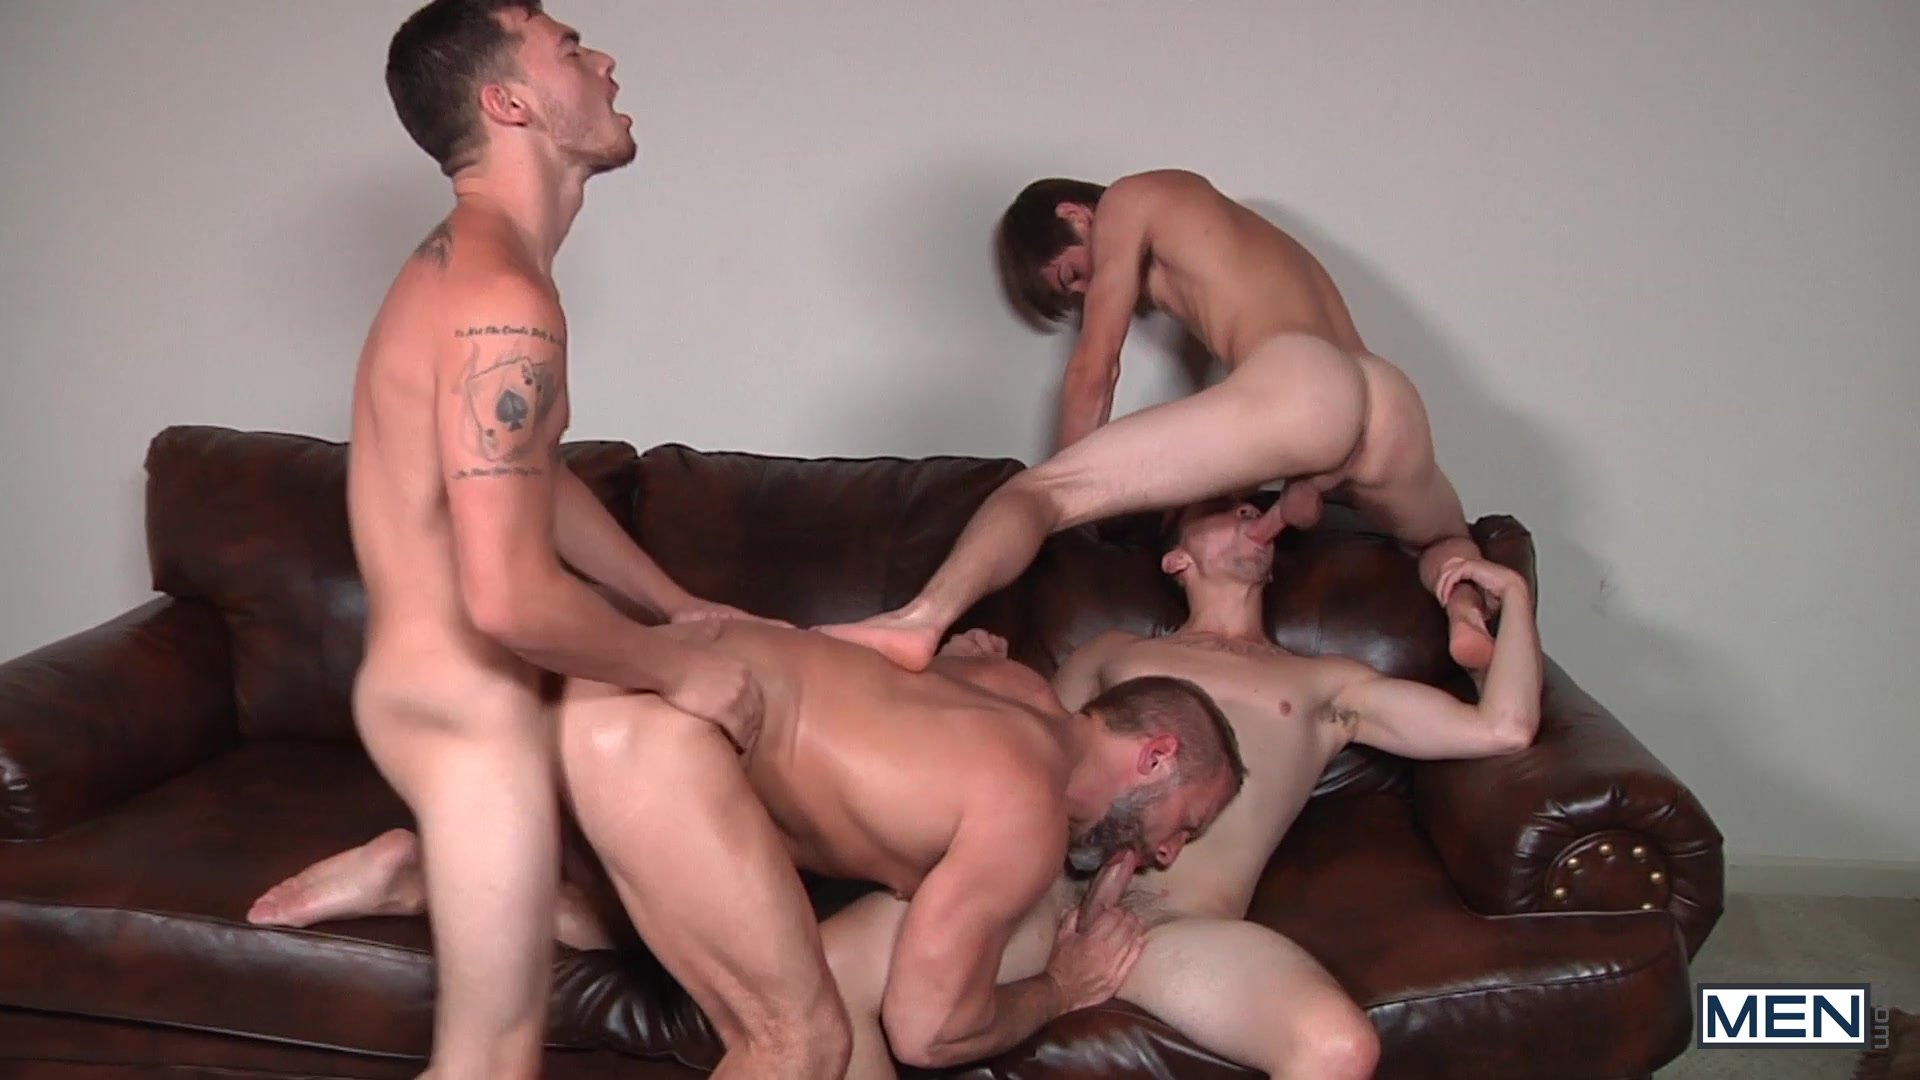 Watch Stepfather's Secret Part 8 – Asher Hawk – Dirk Caber – Johnny Rapid – Trevor Spade – Jo – Jizz Orgy (MEN.COM) Gay Porn Tube Videos Gifs And Free XXX HD Sex Movies Photos Online